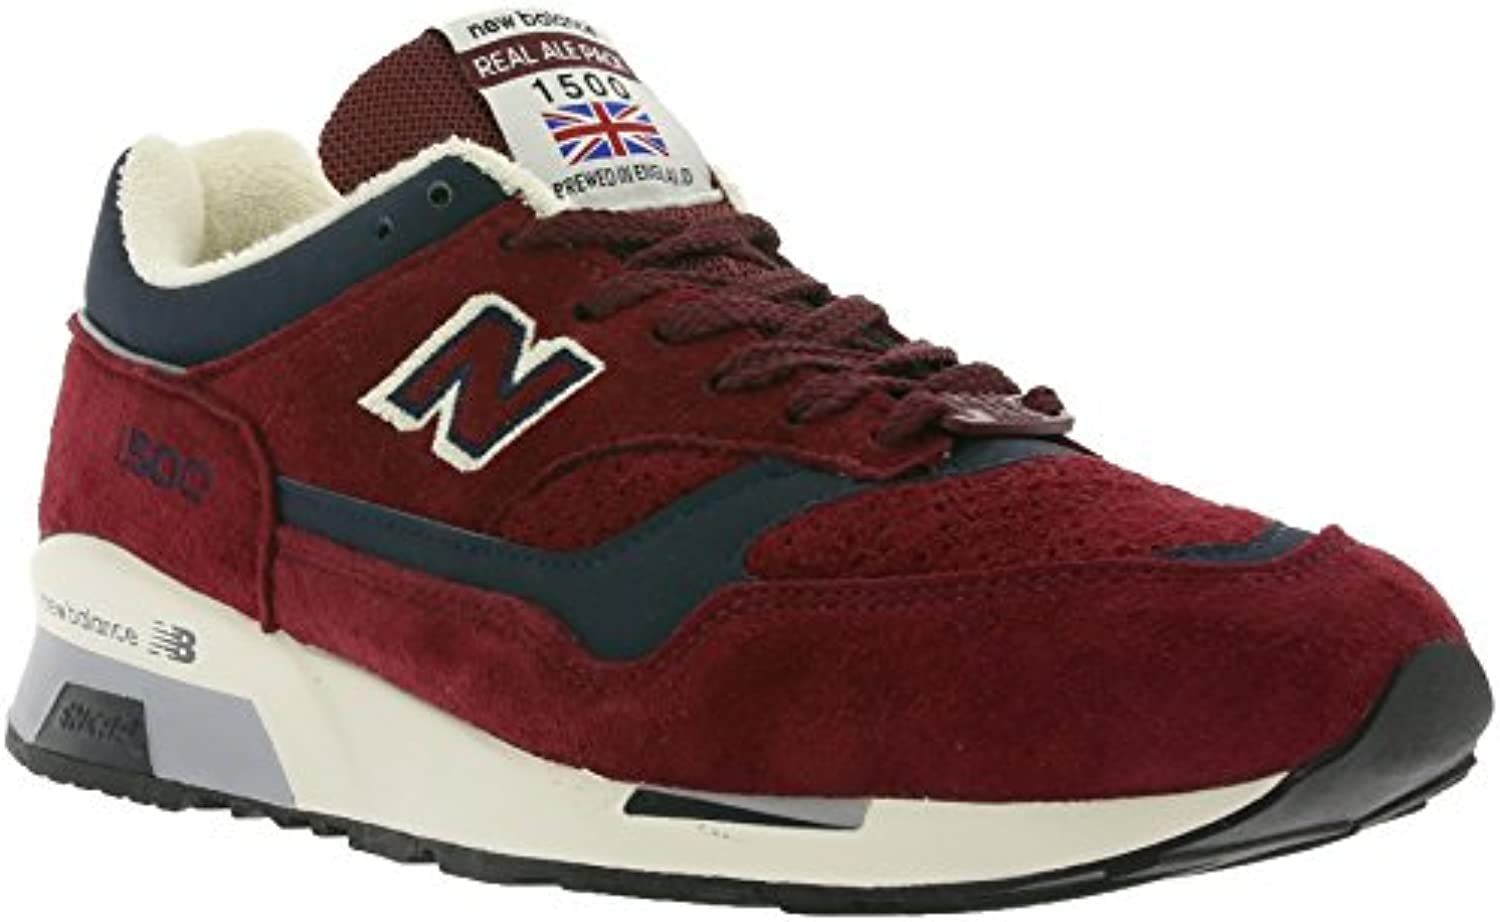 New Balance M1500 Real Ale Pack, AB burgundy -